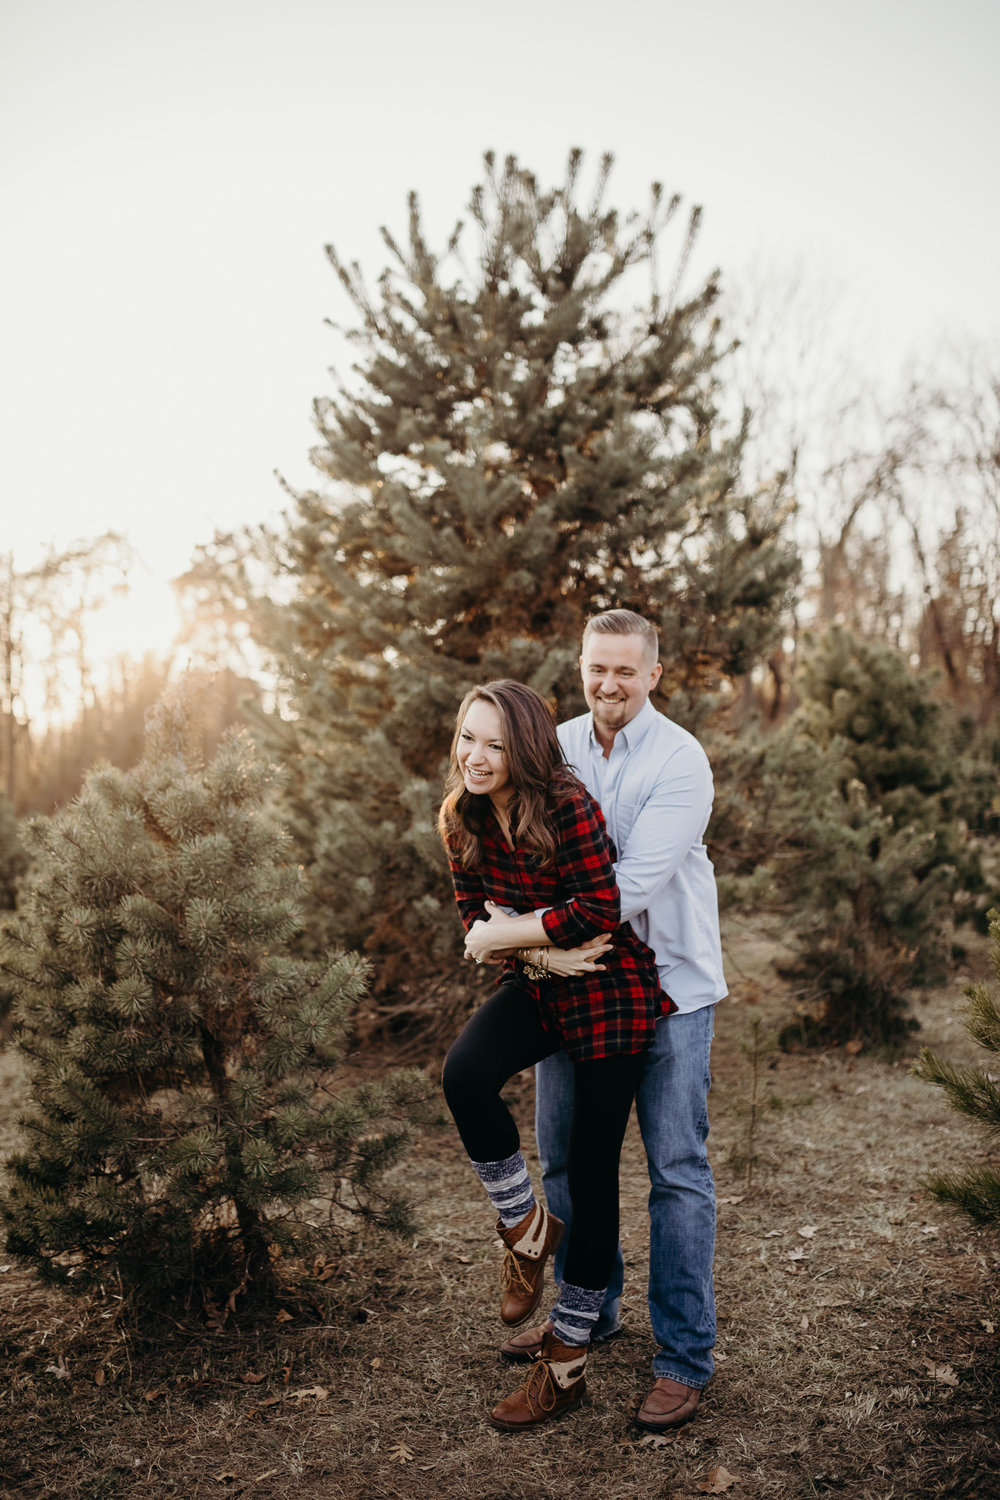 Engagement - Tree picking - Wedding Photographer - Virginia - Best - Pat Cori Photography-24.jpg